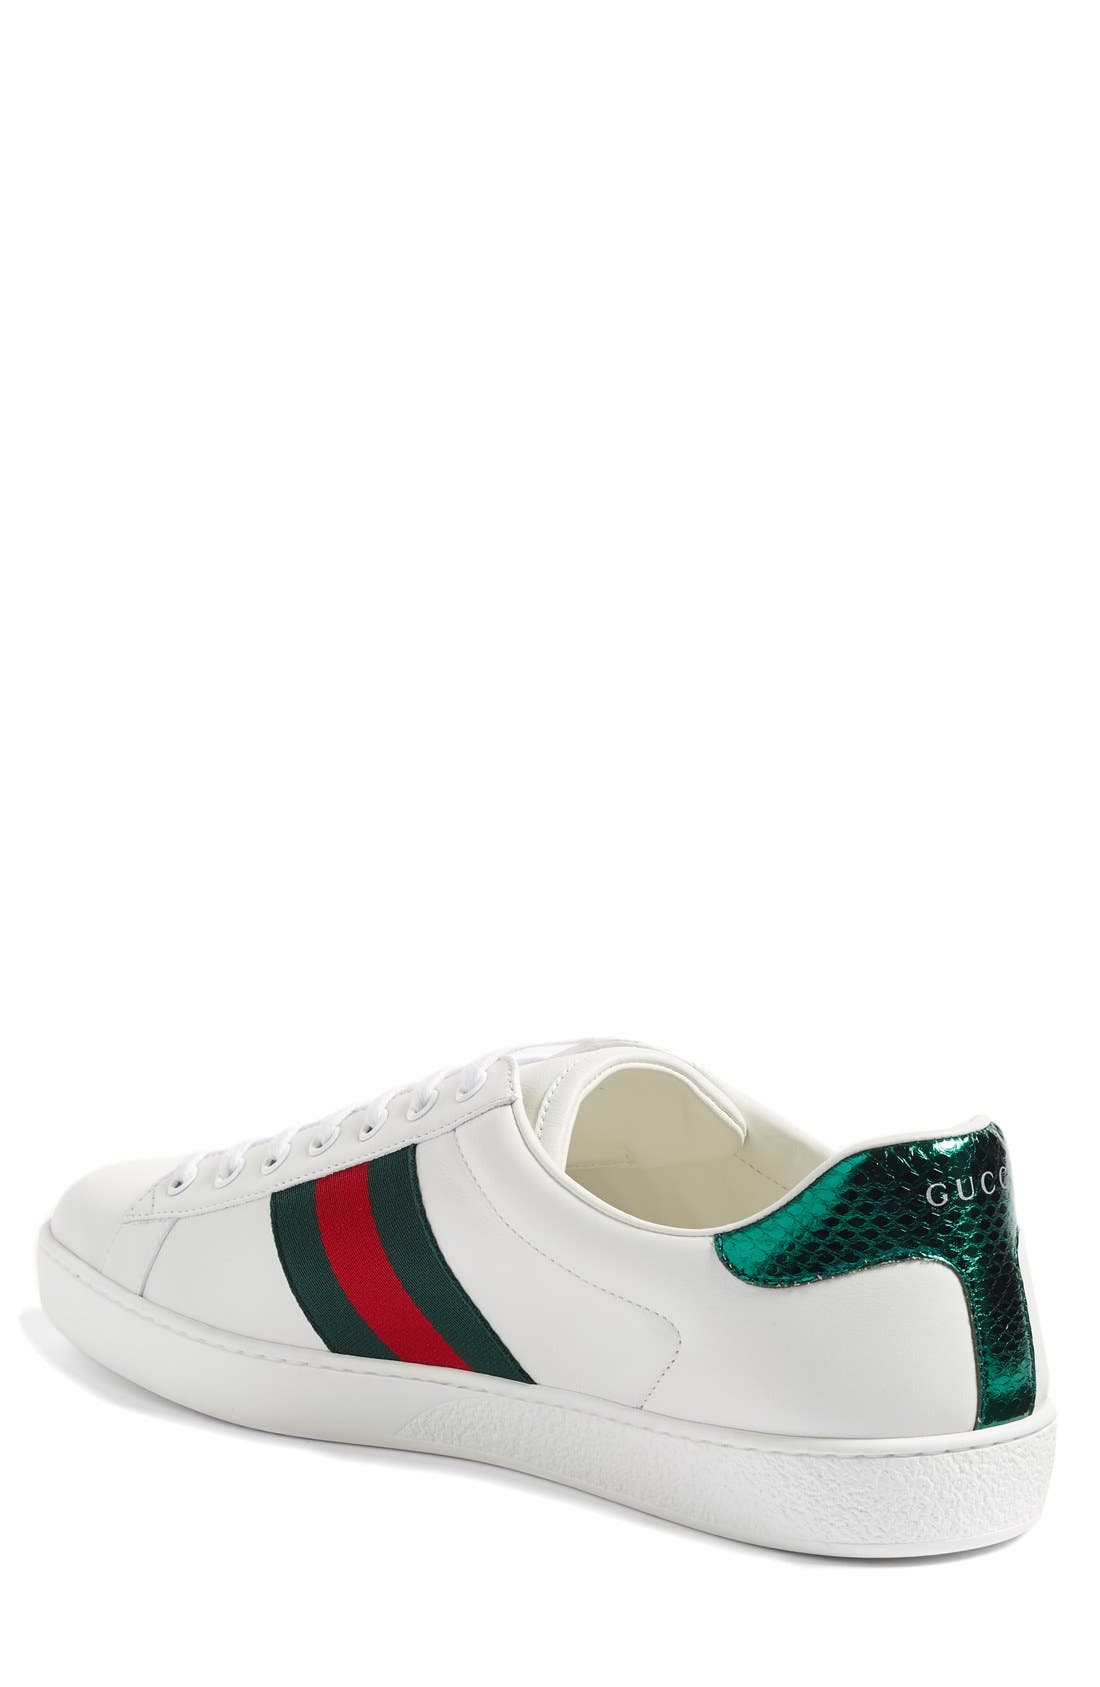 GUCCI, 'New Ace' Sneaker, Alternate thumbnail 3, color, BIANCO LEATHER